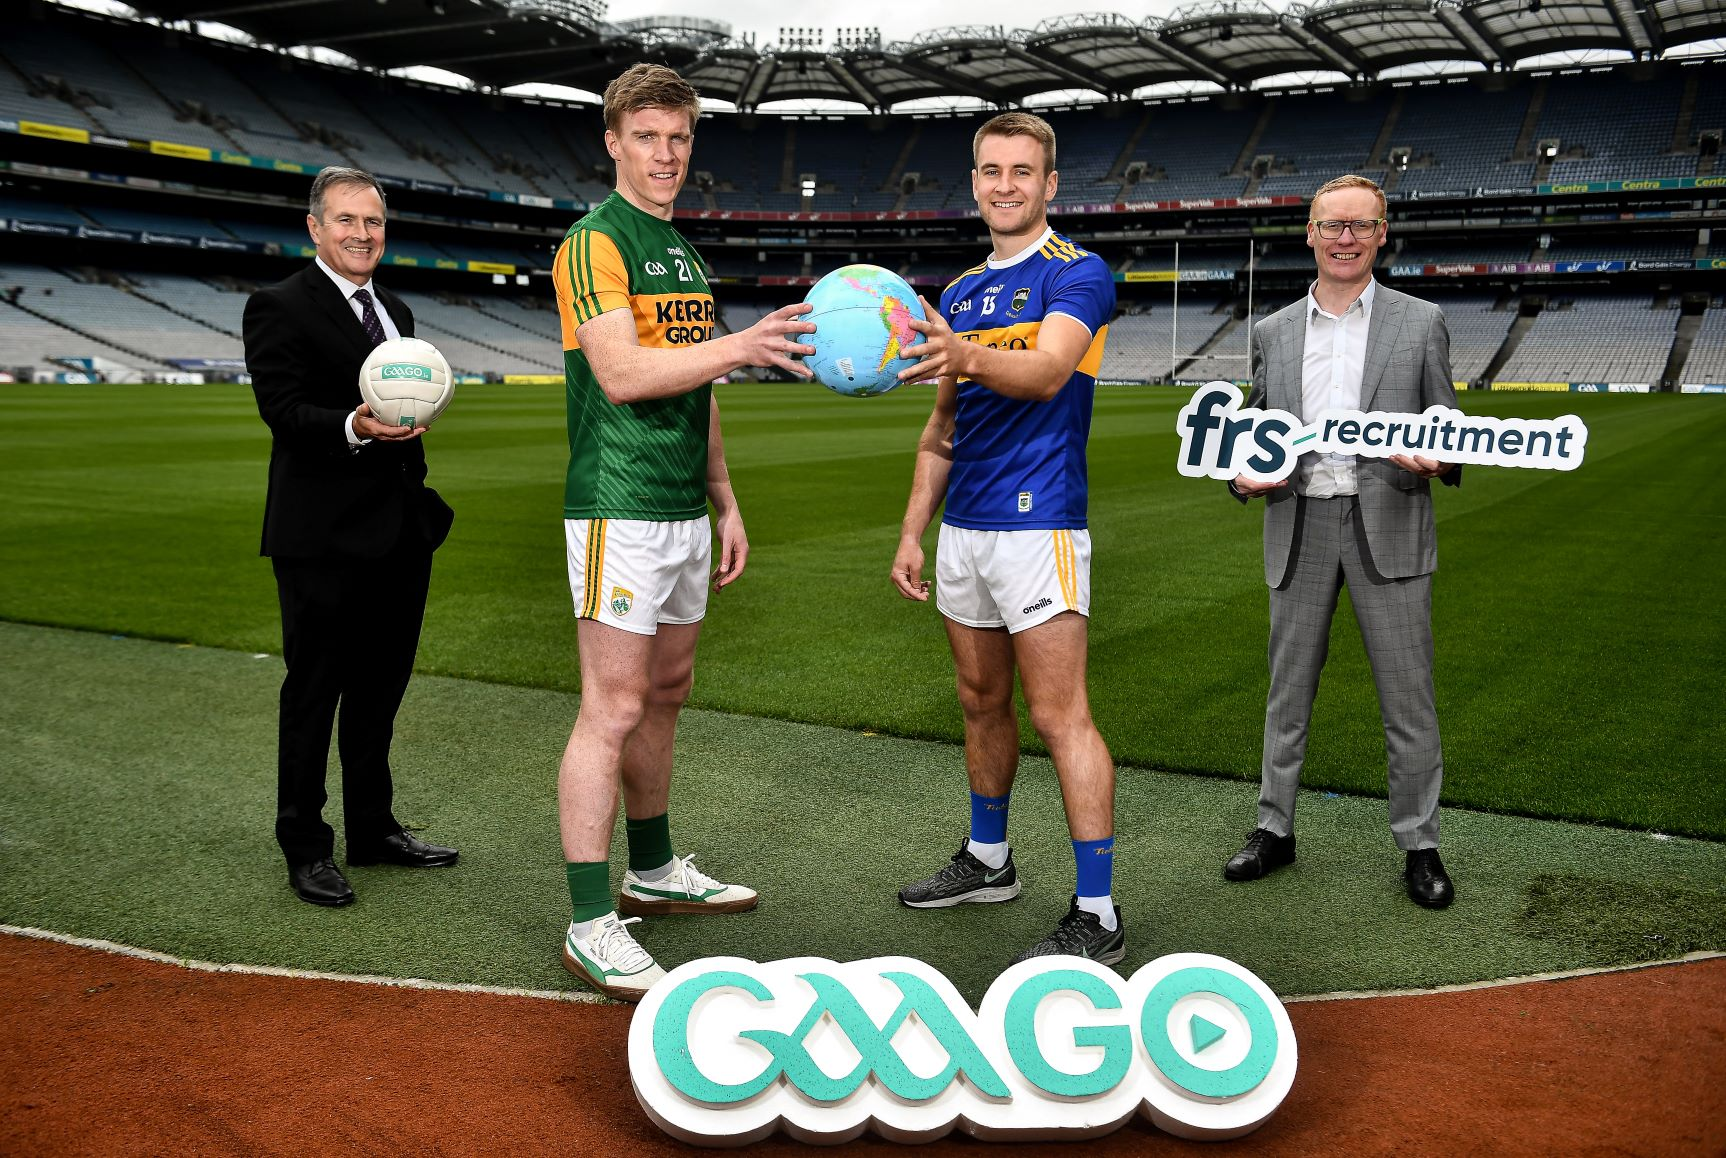 GAA and FRS Recruitment Announce New GAAGO Partnership